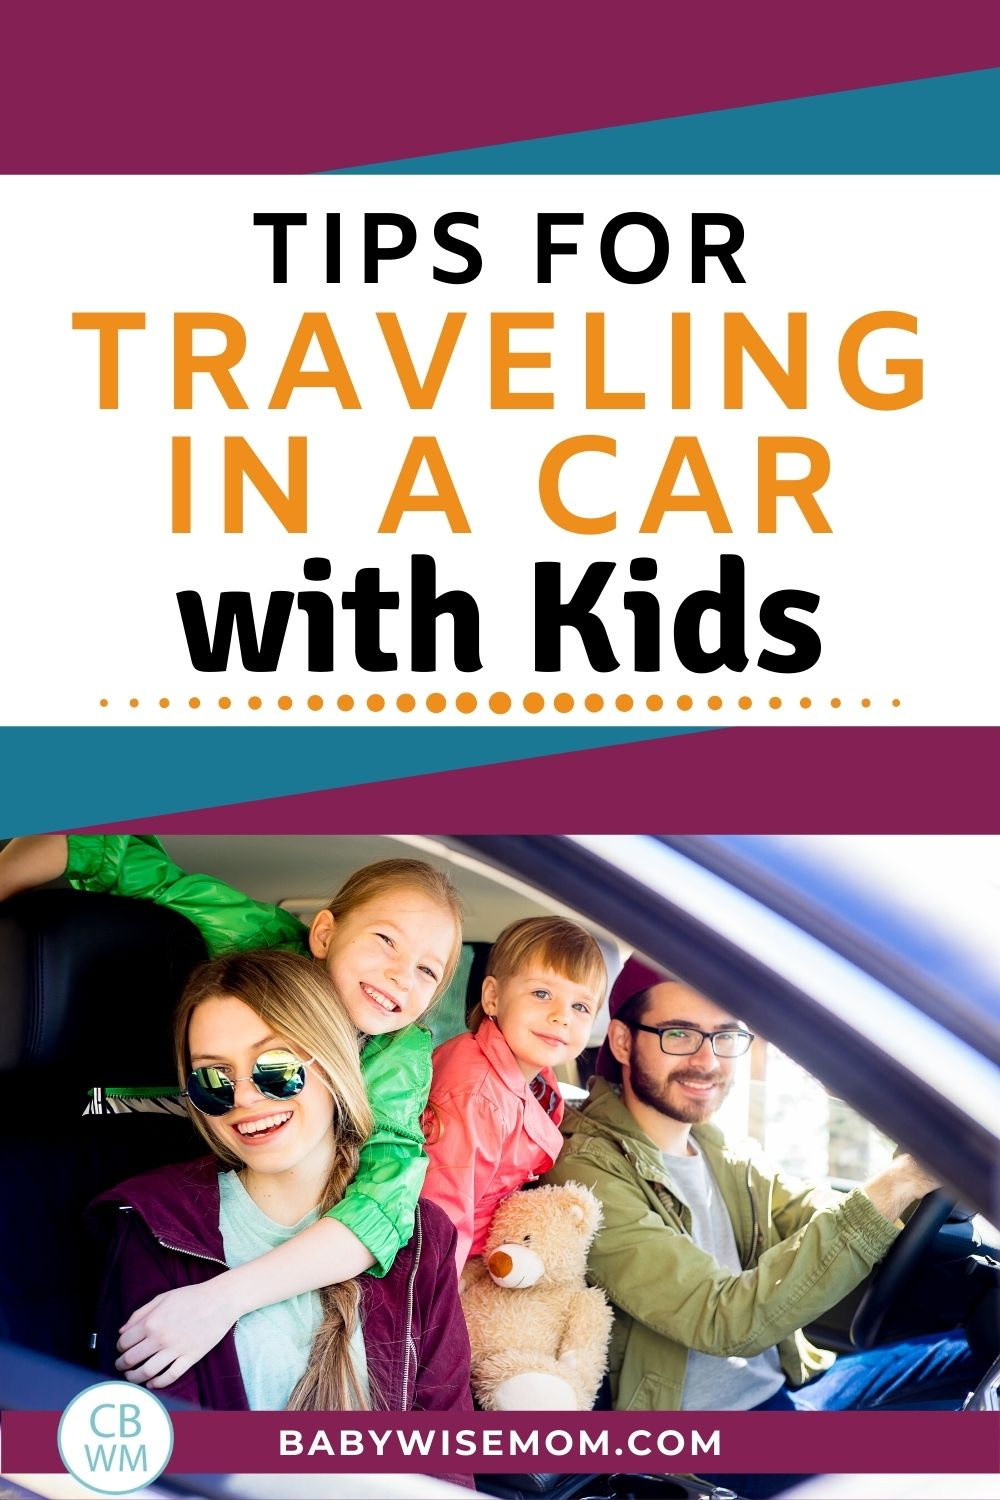 Tips for traveling in a car with kids